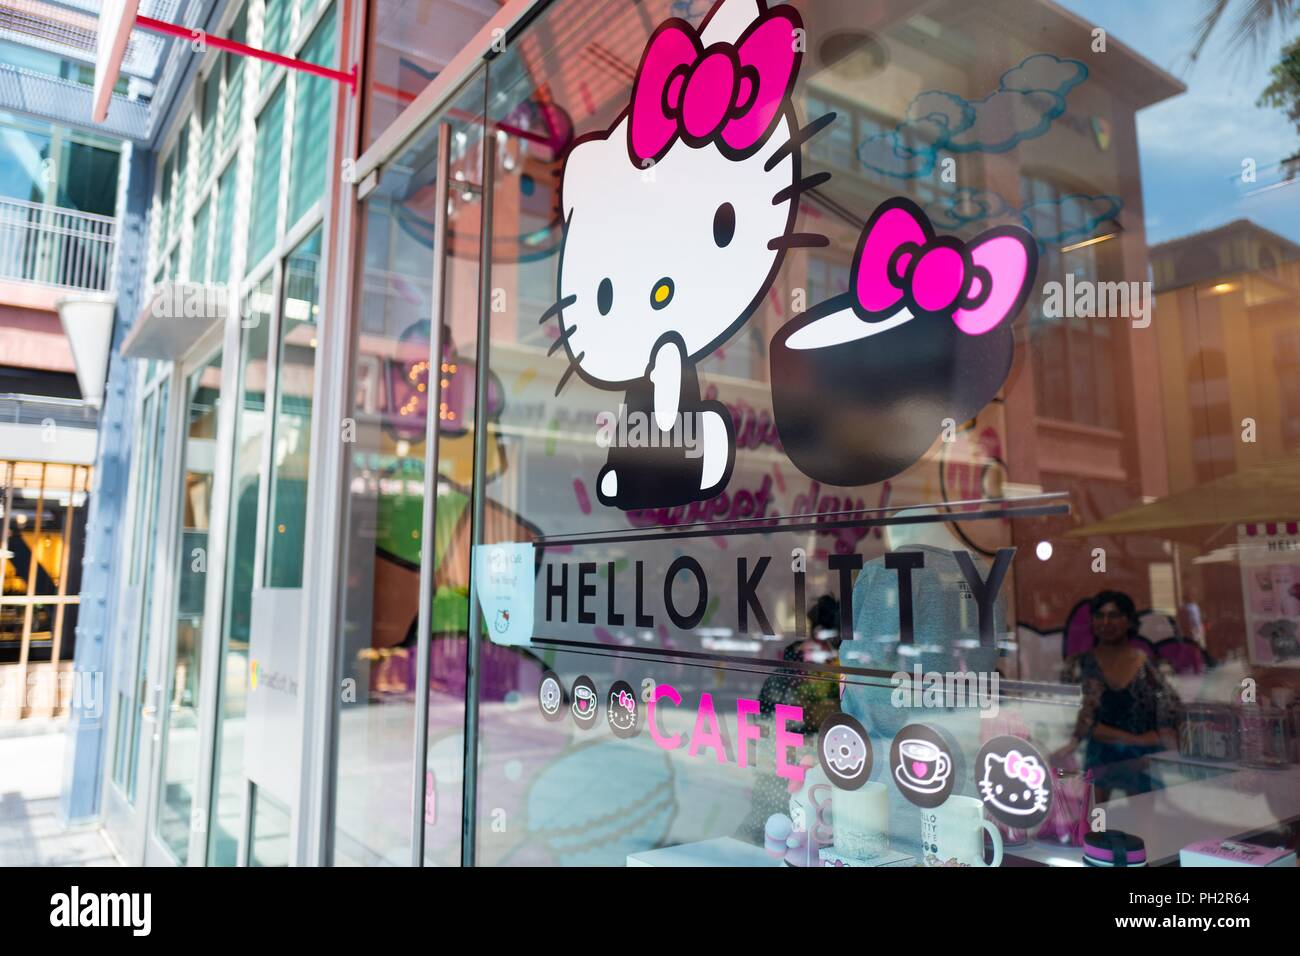 cb42794f6 Facade of the Hello Kitty Cafe, a newly opened cafe operated by Japanese company  Sanrio